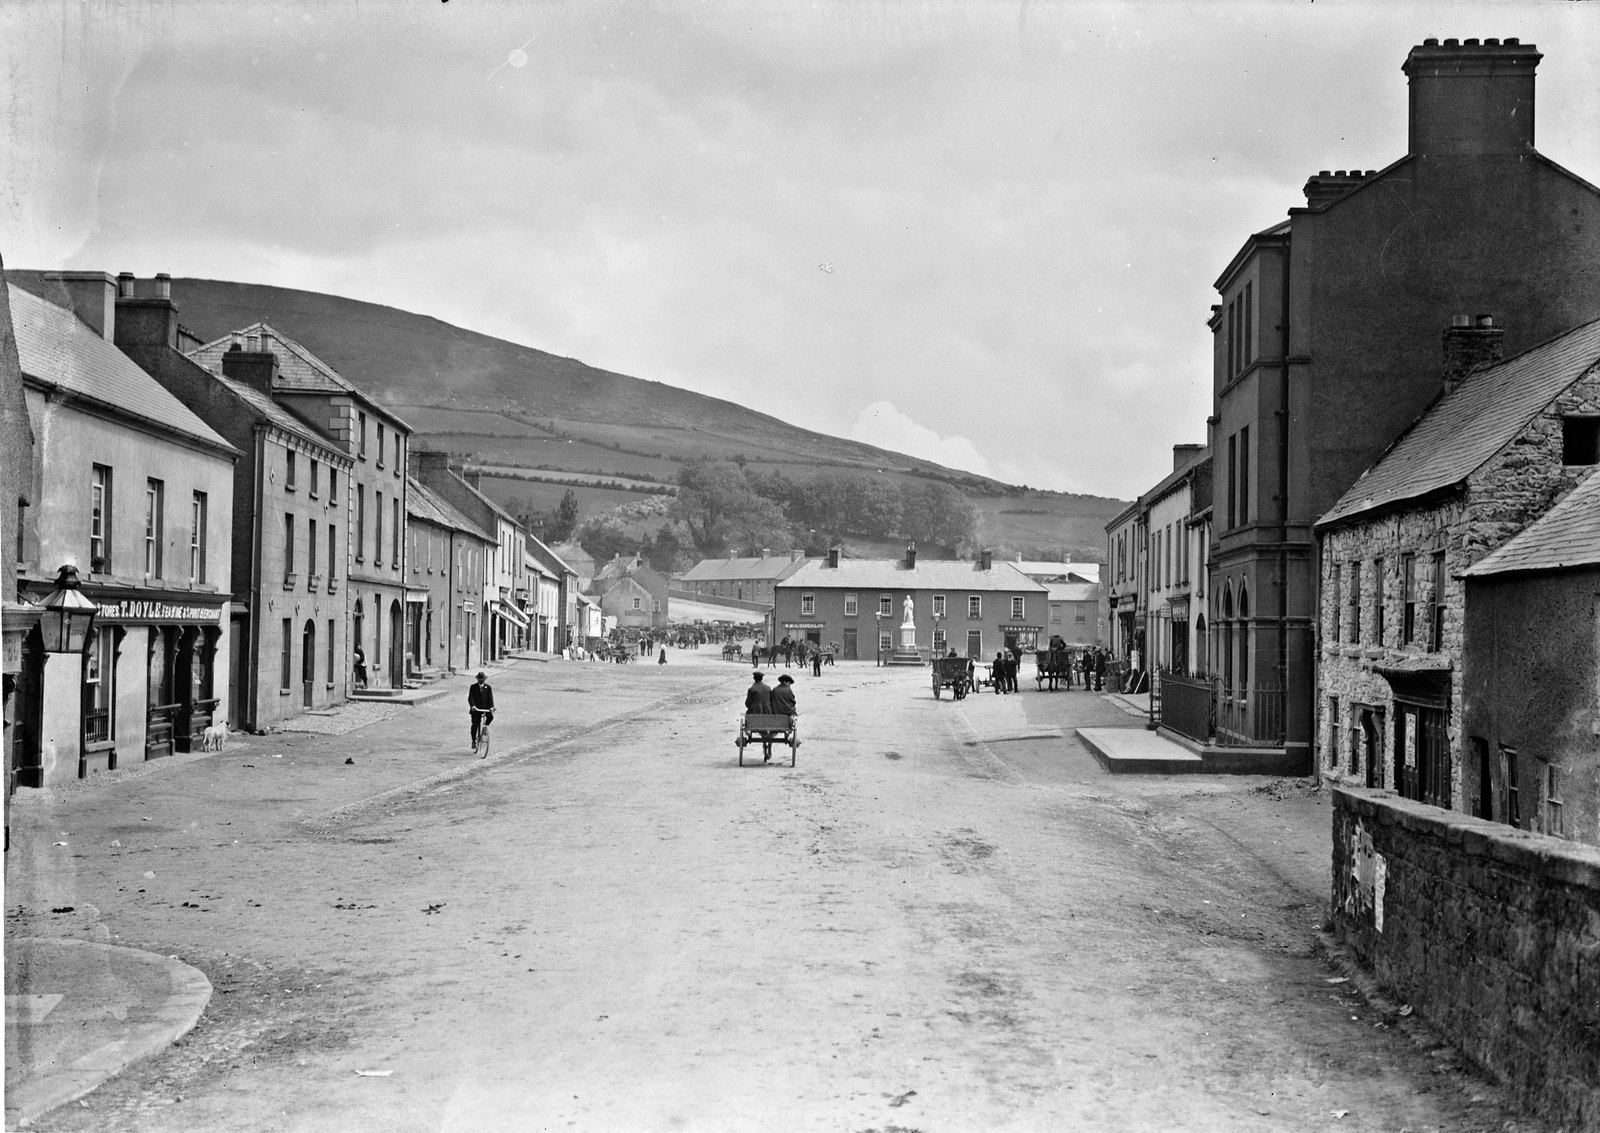 The Square, Baltinglass, Co. Wicklow | by National Library of Ireland on The Commons